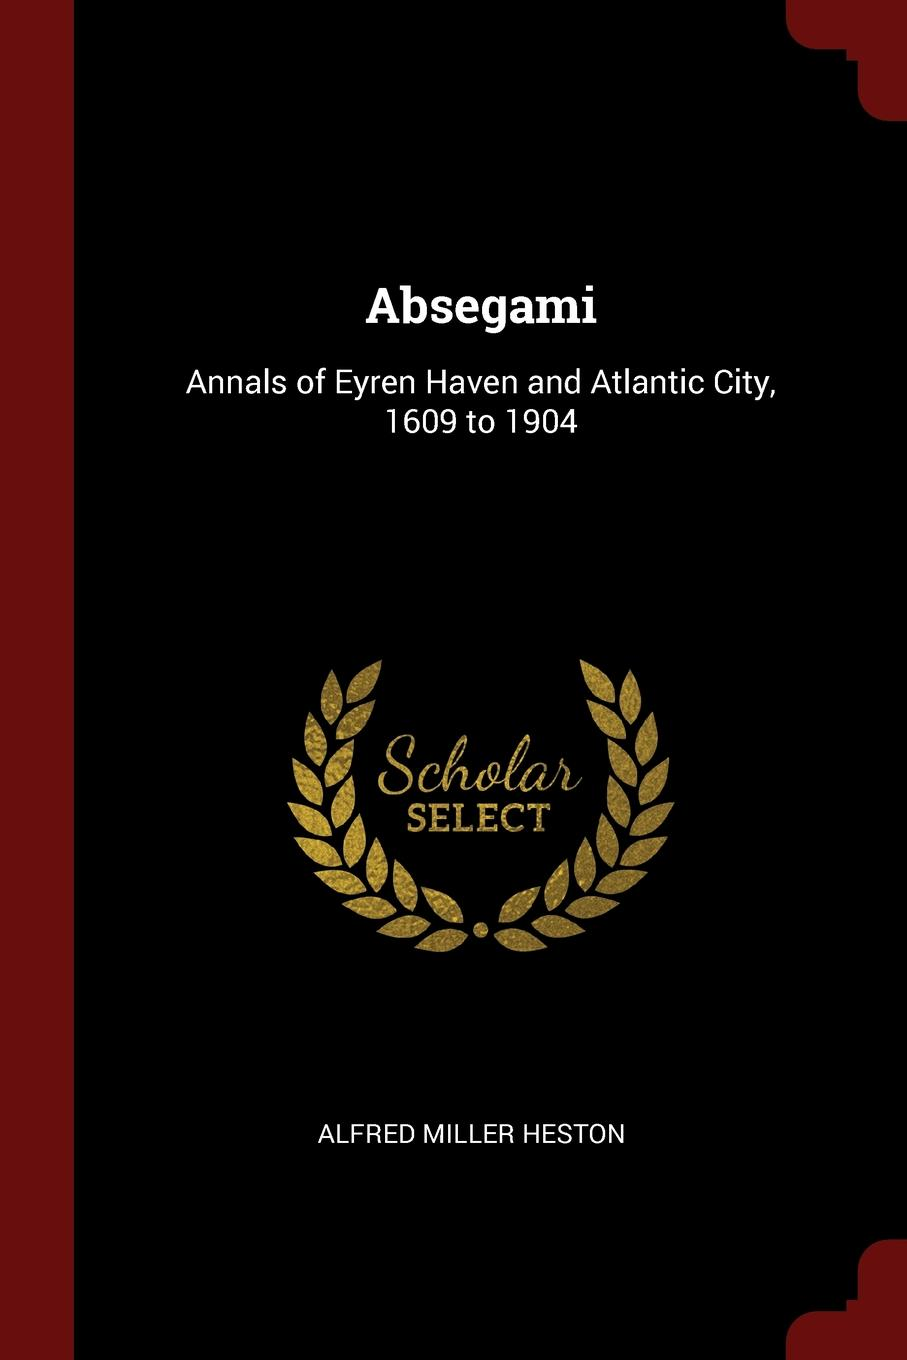 Alfred Miller Heston Absegami. Annals of Eyren Haven and Atlantic City, 1609 to 1904